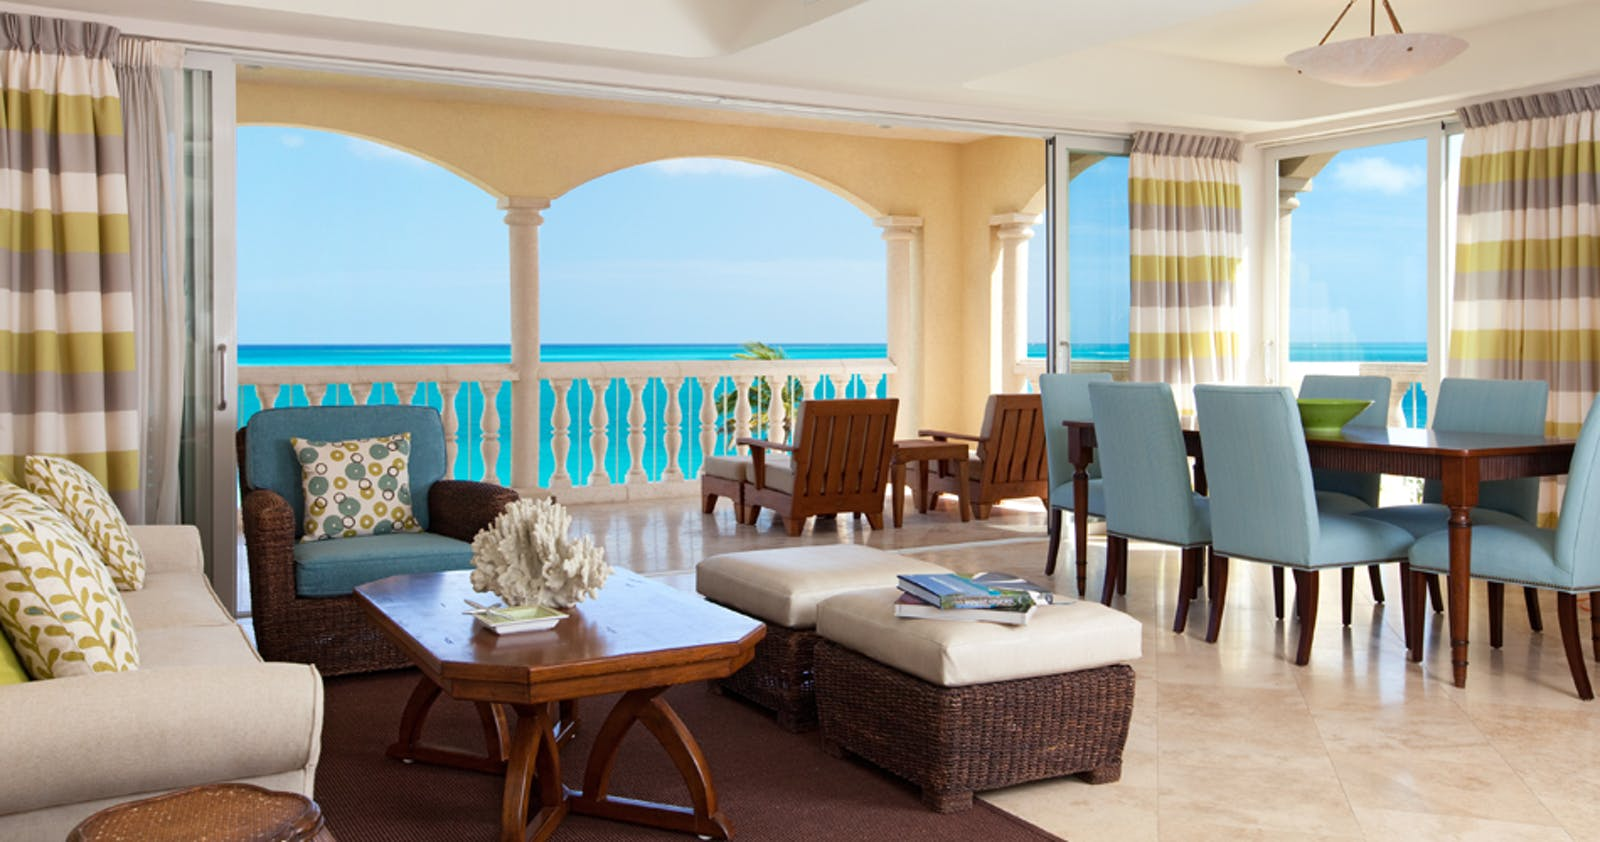 Living Room At Grace Bay Club, Turks And Caicos